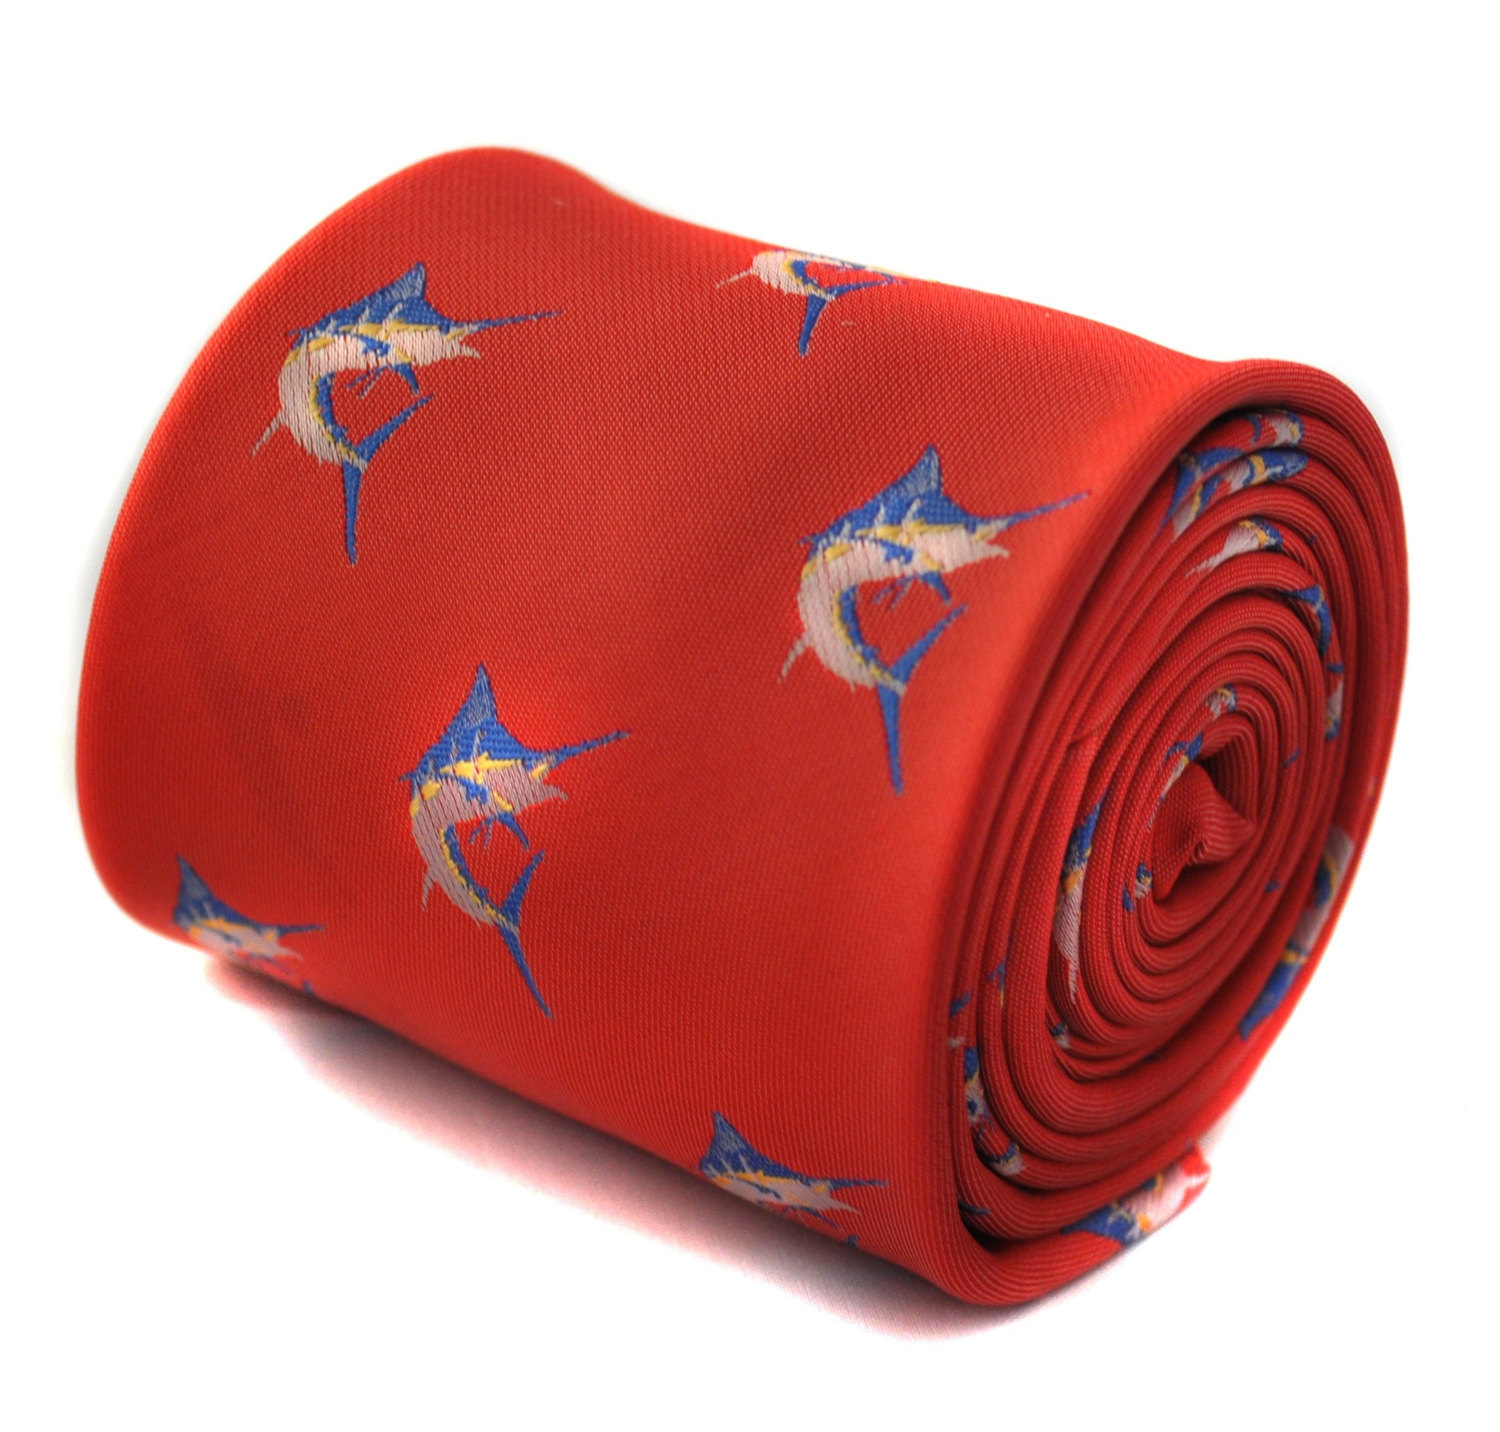 red tie with marlin embroidered design with signature floral design to the rear